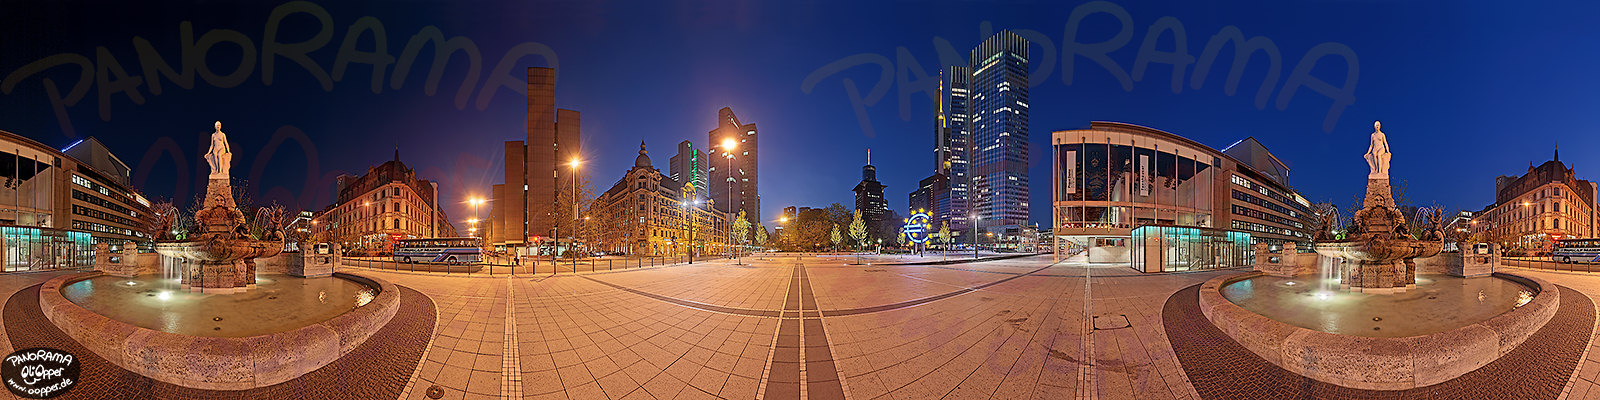 Frankfurt - Willy-Brandt-Platz - p172 - (c) by Oliver Opper